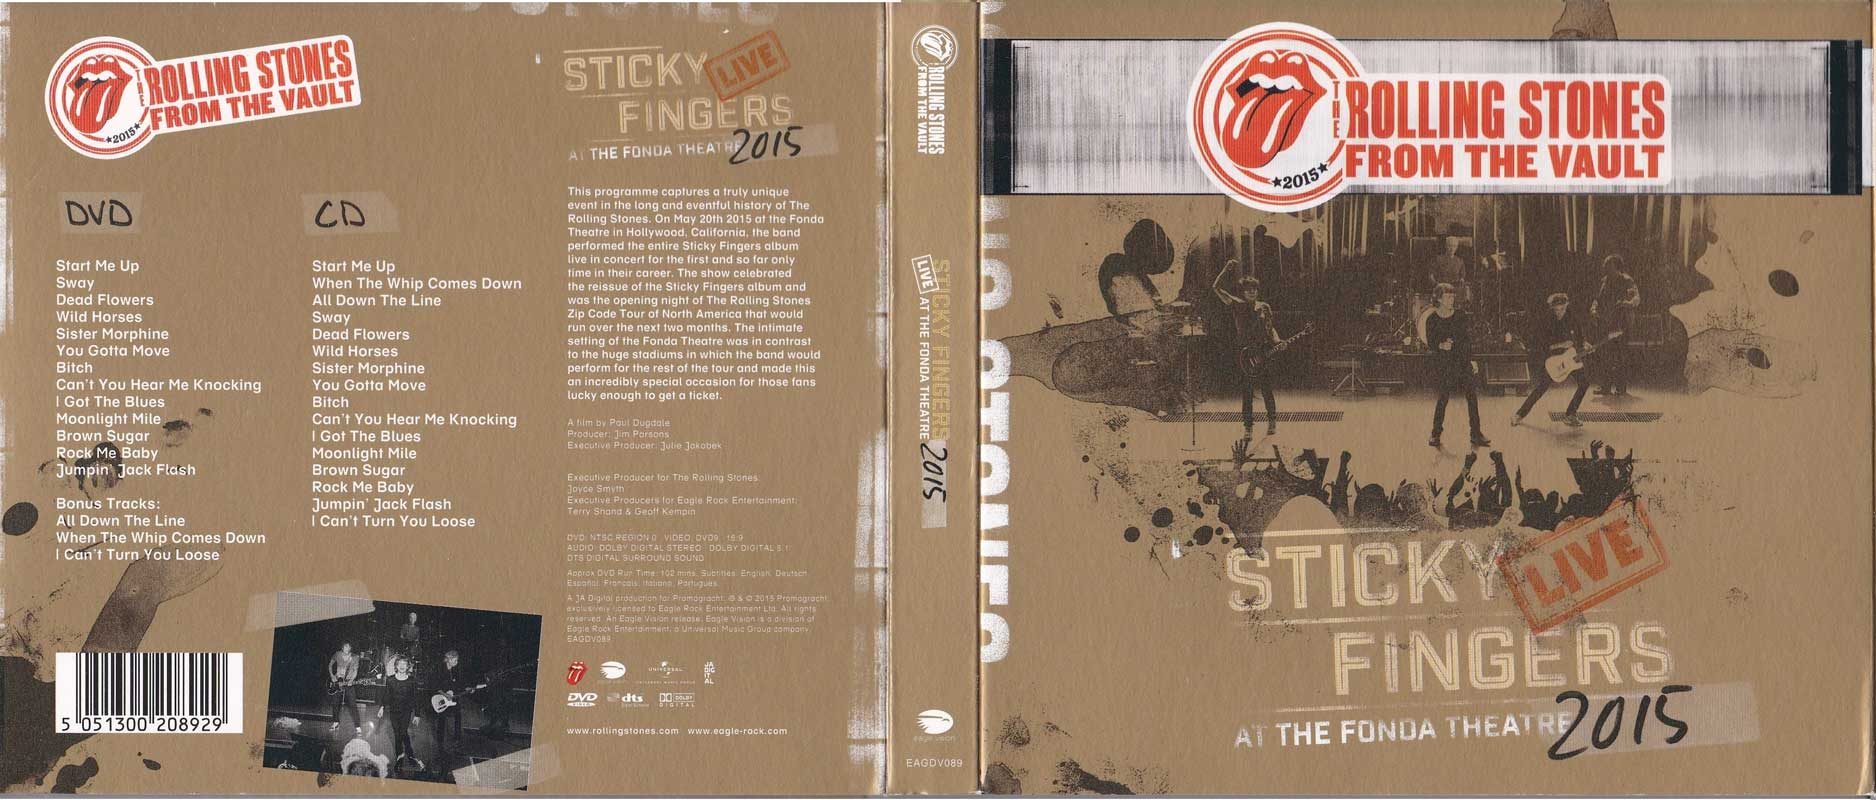 The Rolling Stones - Sticky Fingers: Live At The Fonda Theatre 2015 (2017) [CD, DVD & Blu-ray]